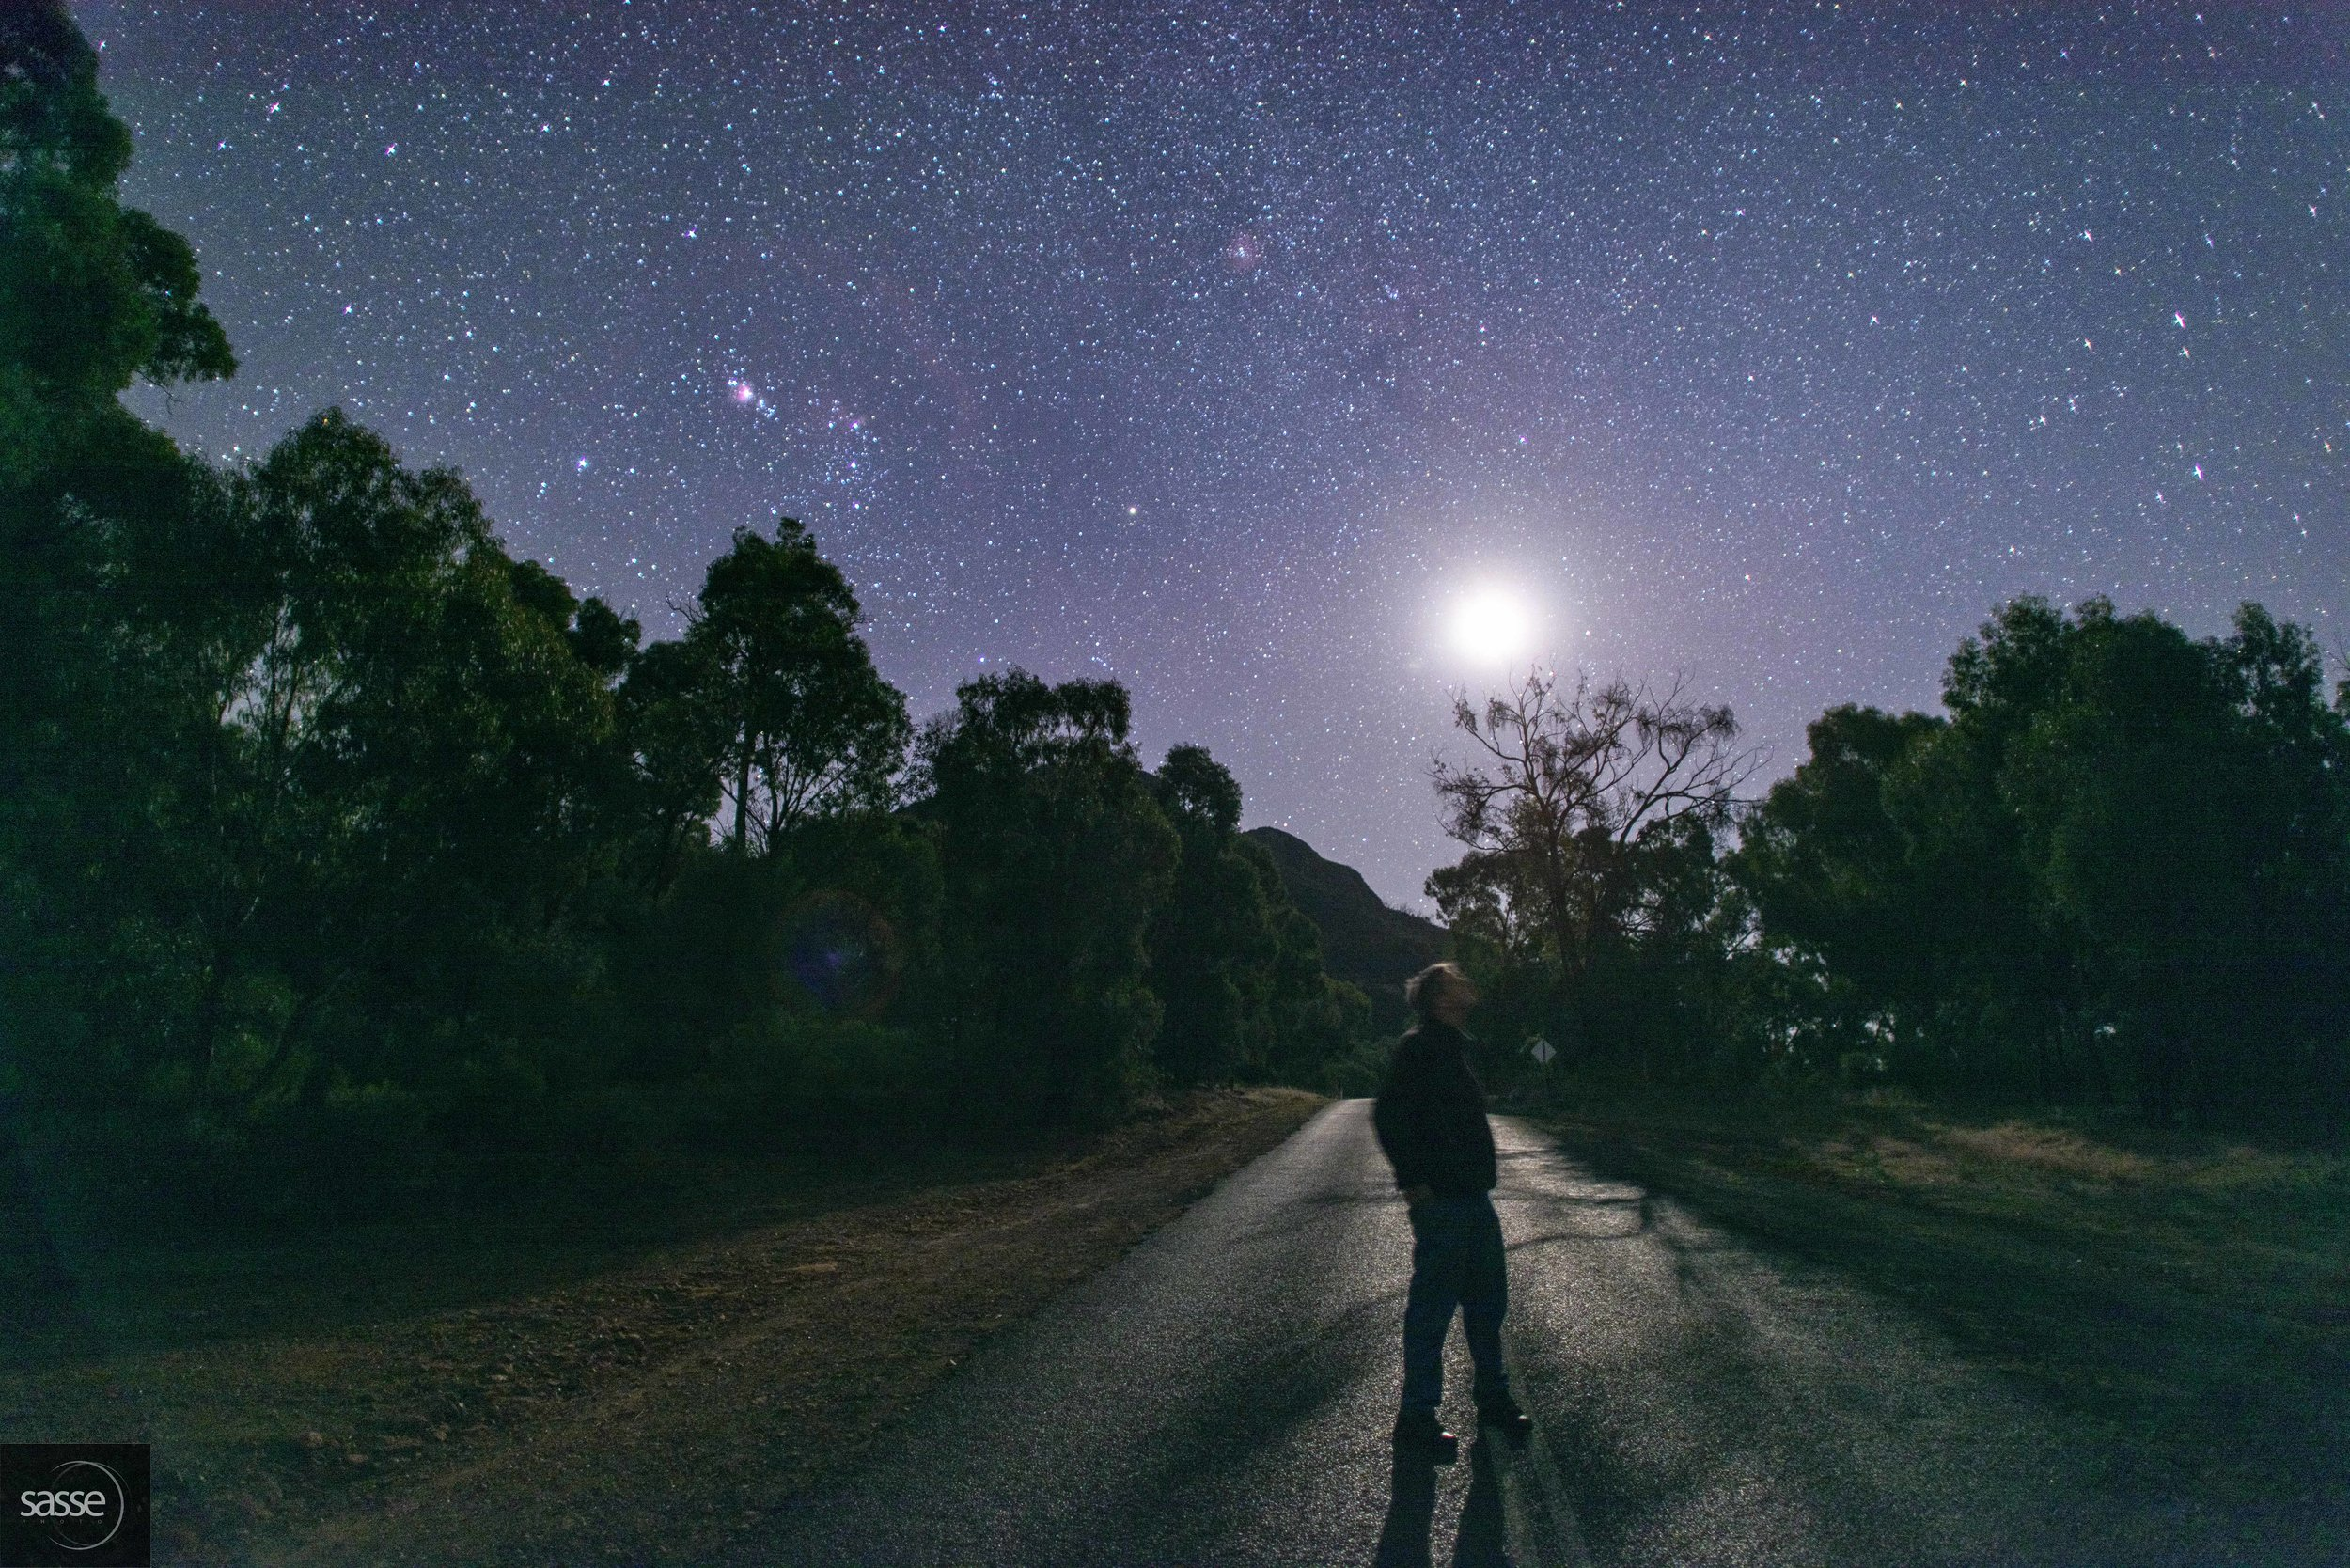 Masterclass A      Capturing the amazing Night Sky with a Camera      Cost - US$220